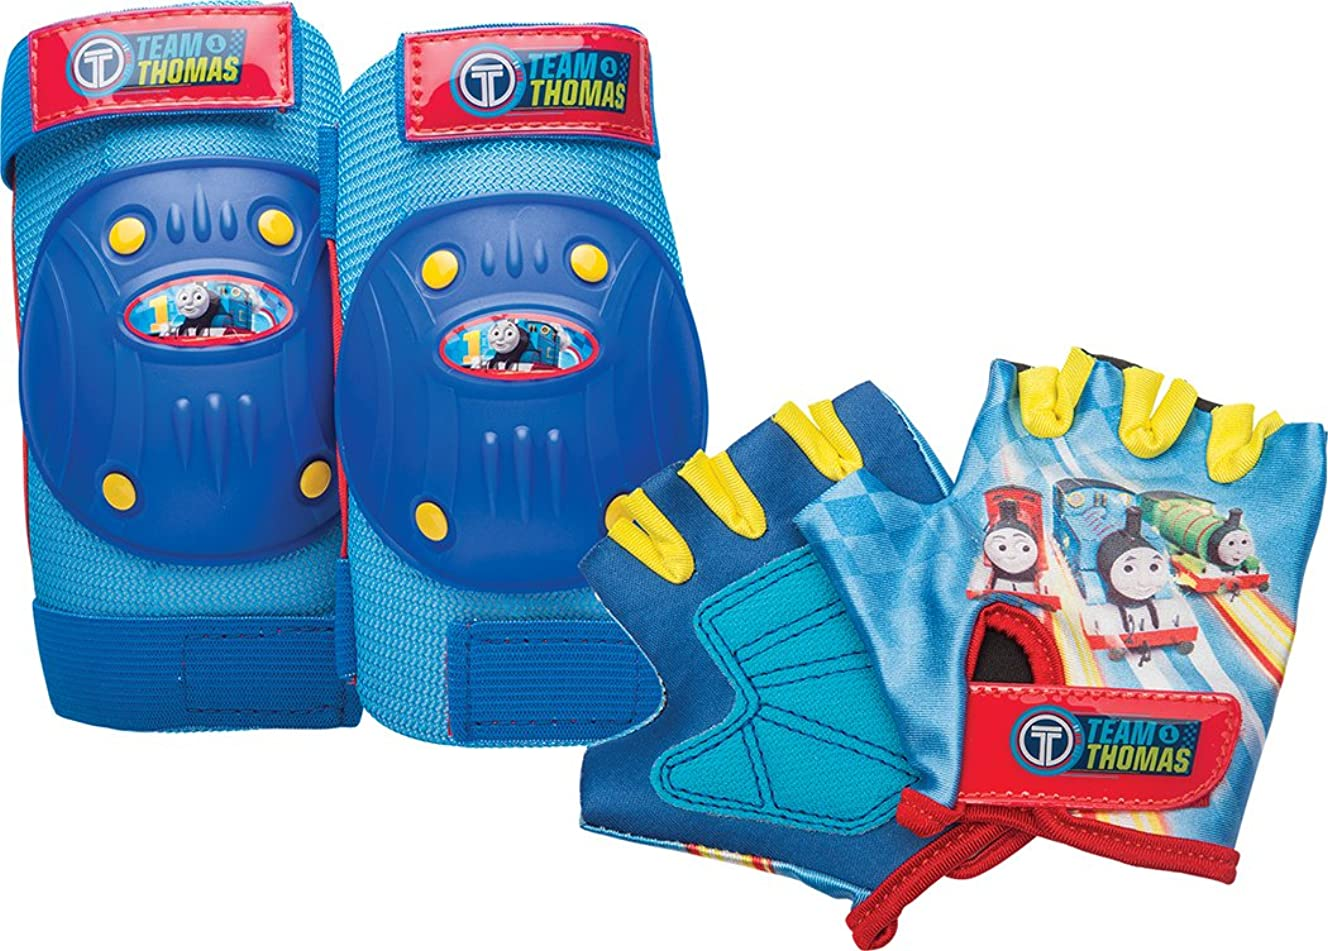 Nickelodeon Bell Thomas and Friends Protective Gear Pad & Glove Set, Blue